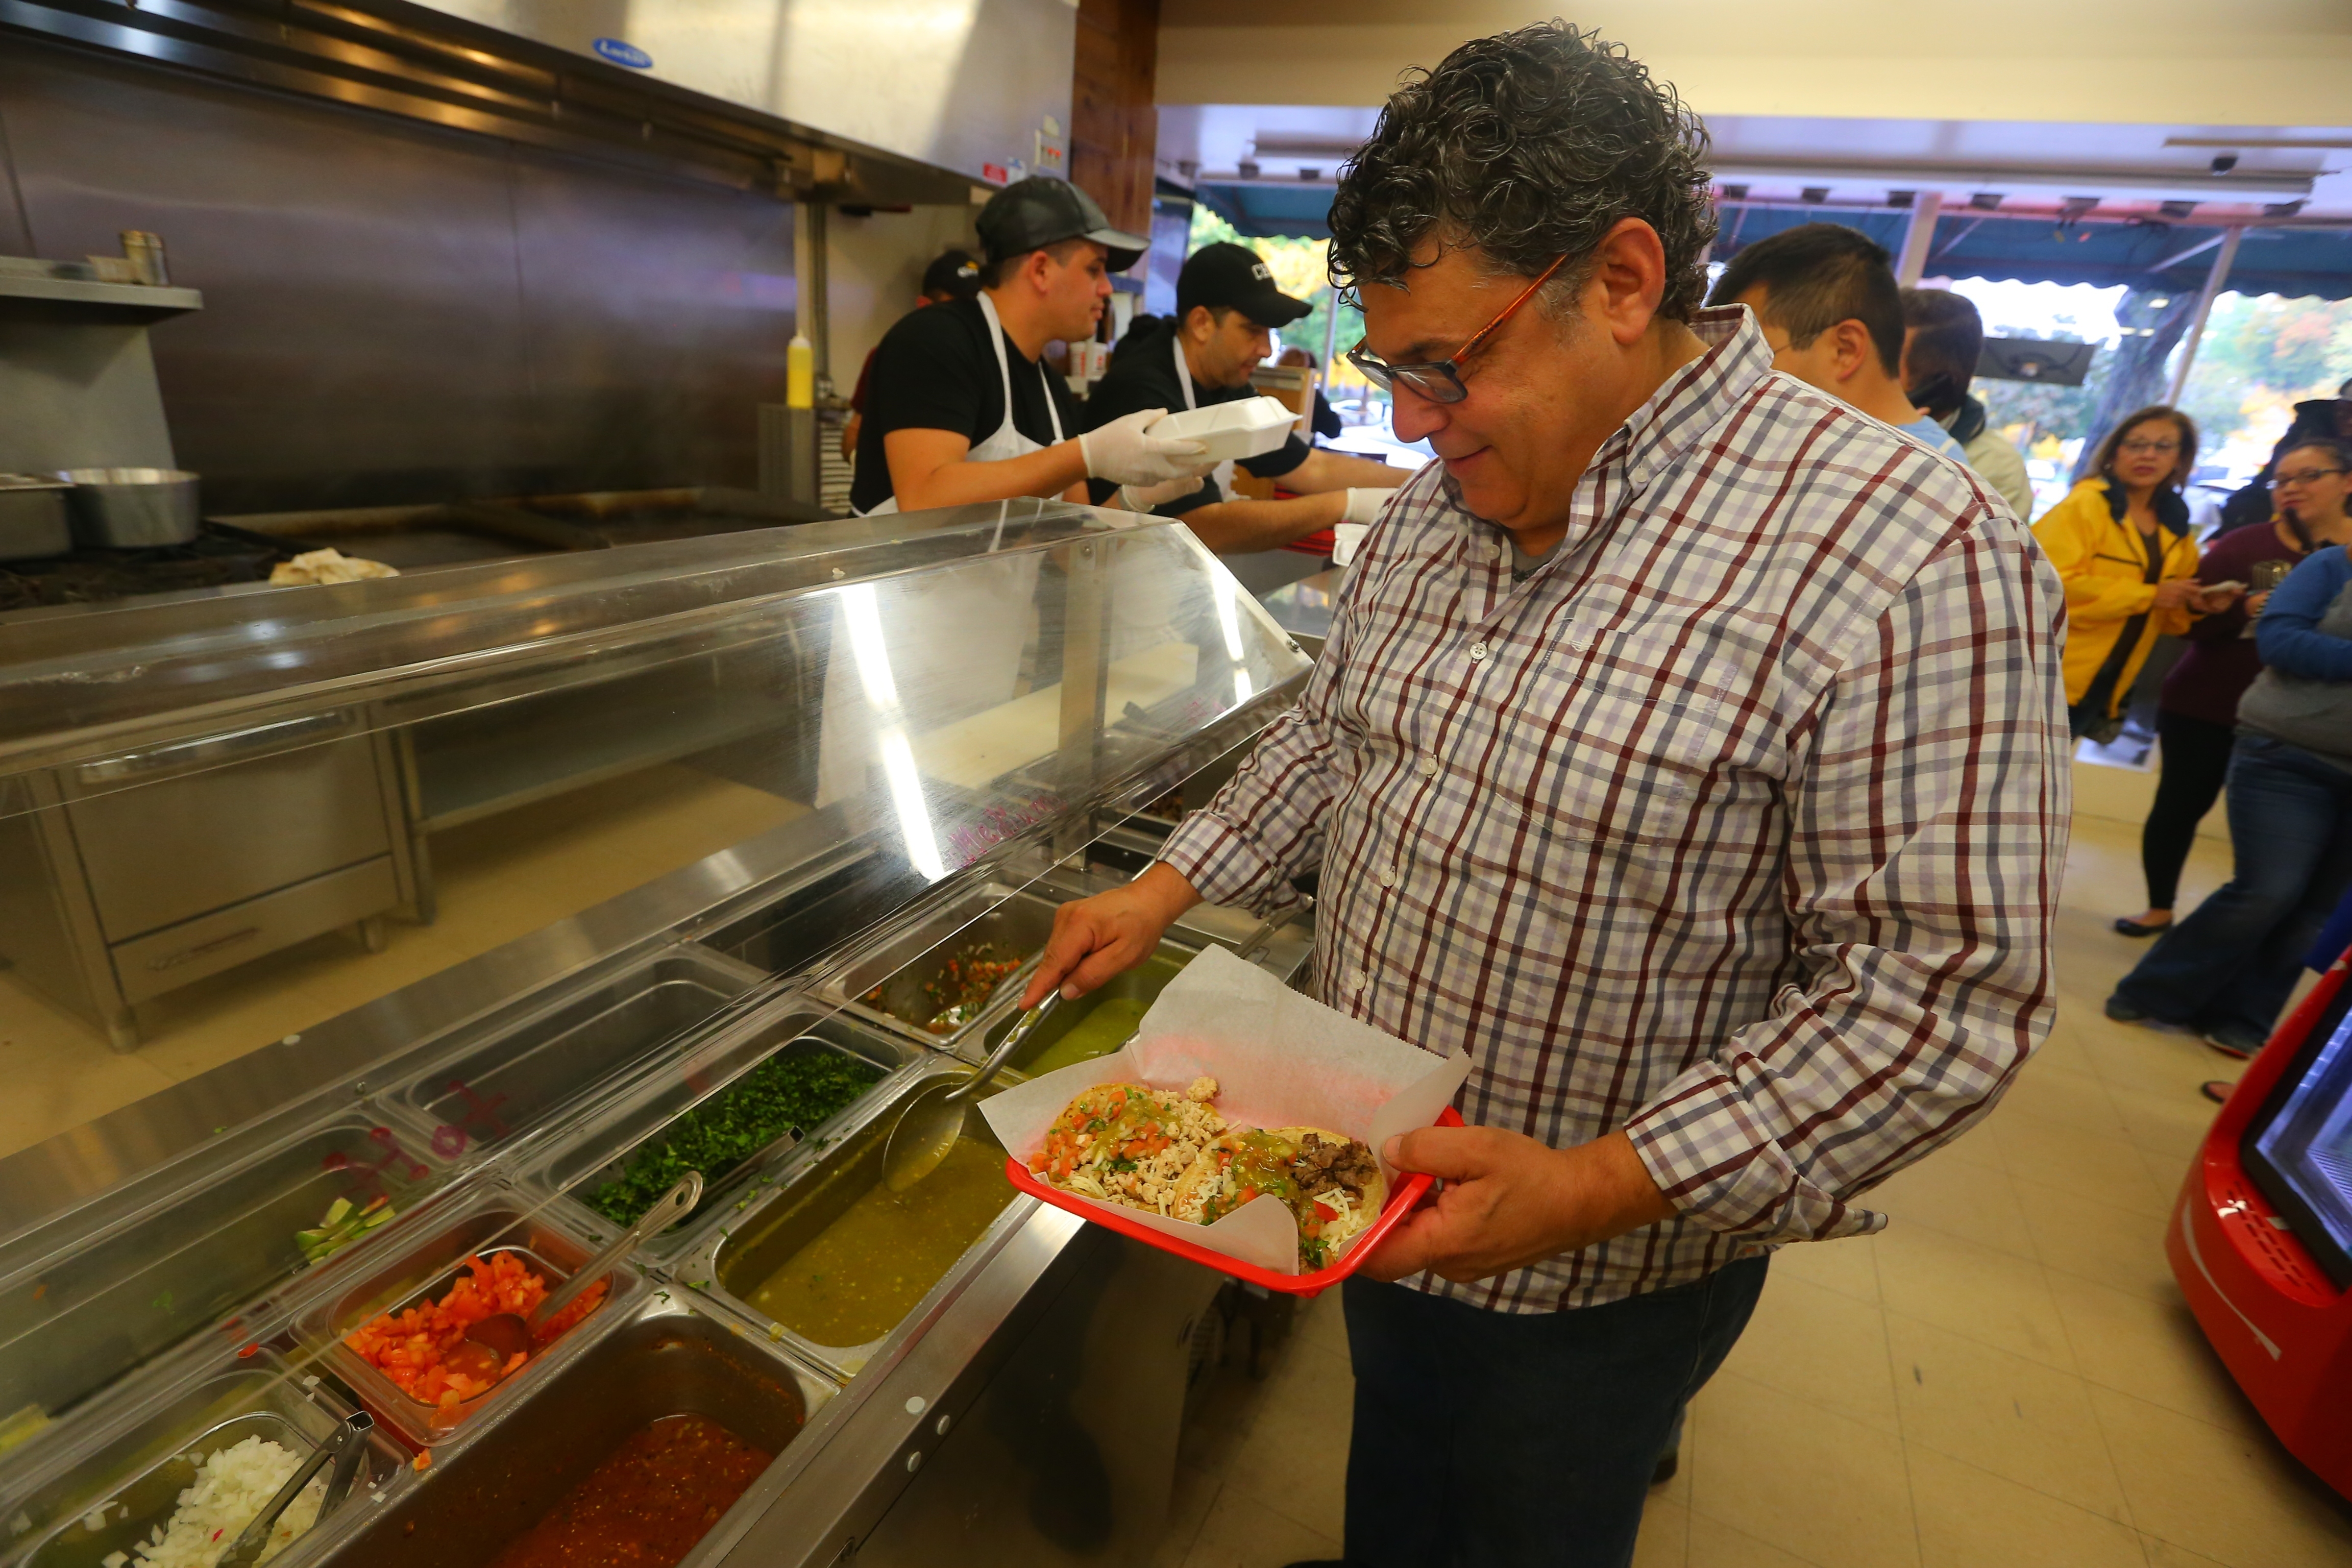 George Dolce of Kenmore with his taco's at La Divina Mexican Store on Friday Oct. 21, 2016, La Divina Mexican Store reopened after briefly closing following a raid by federal agents and the arrest of Sergio Mucino and several employees, in Kenmore, N.Y., earlier this week. (John Hickey/Buffalo News)